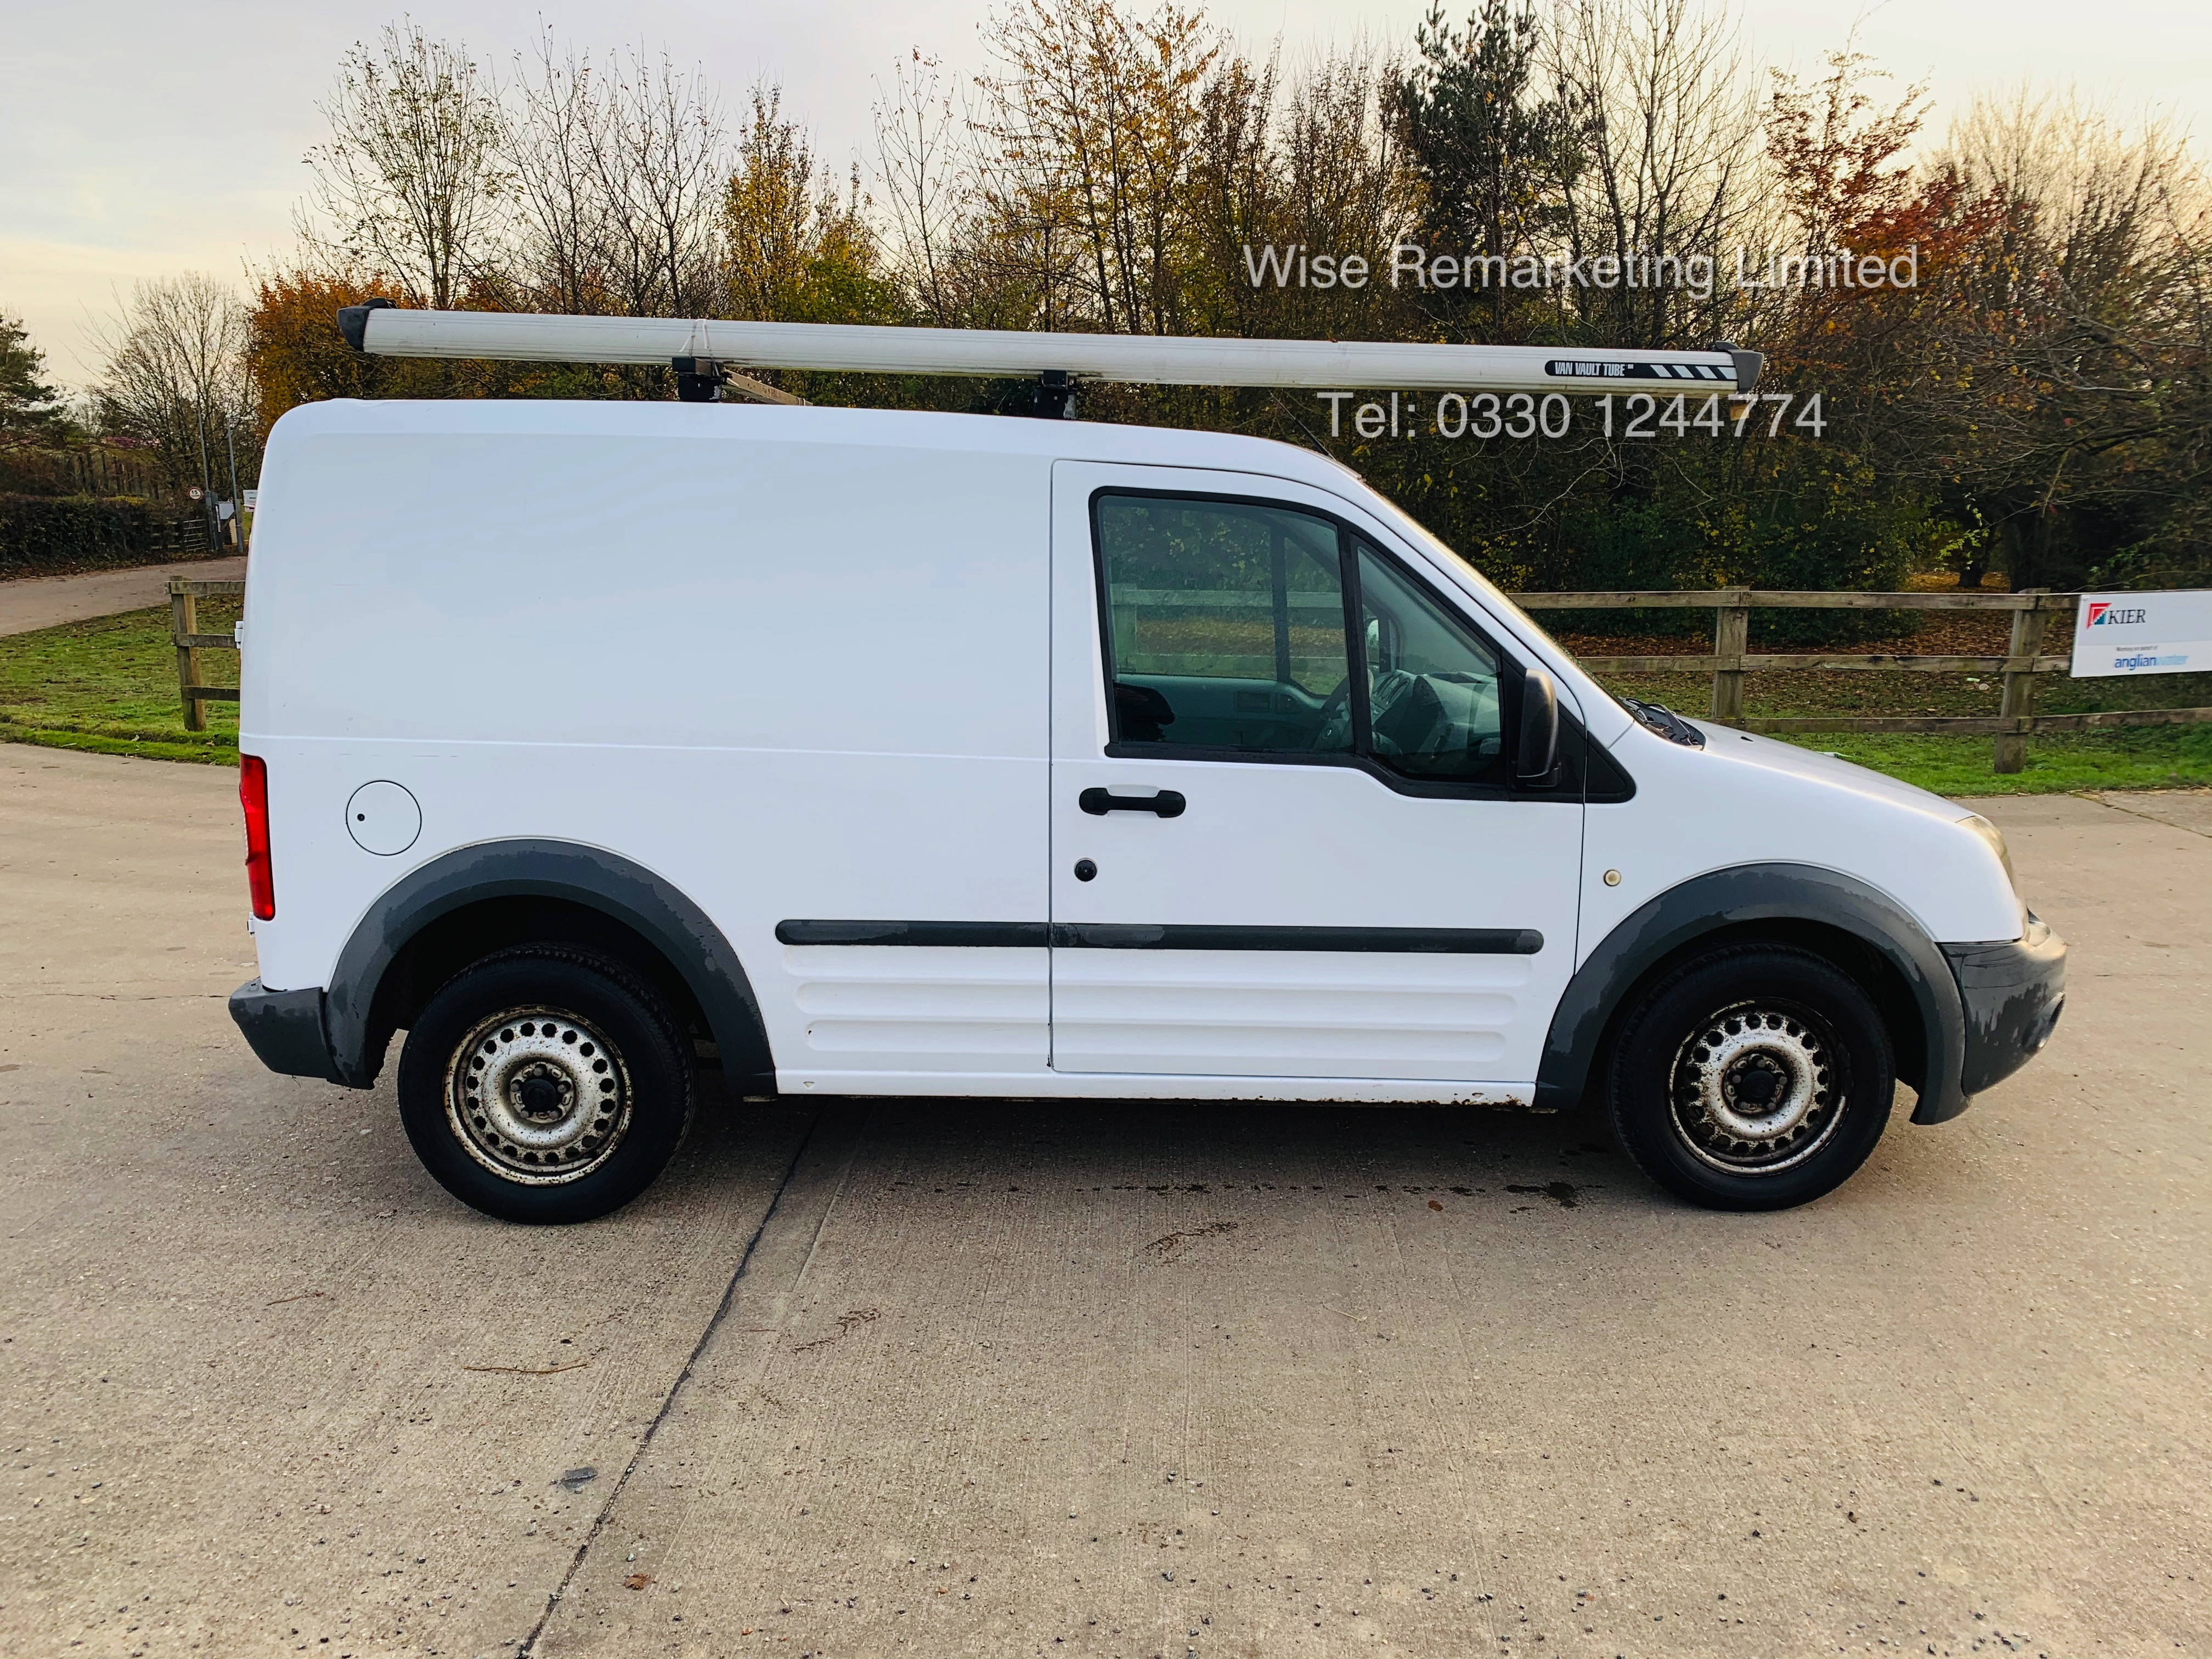 Ford Transit Connect T200 1.8 - 2010 Model - Side Loading Door - Ply Lined - Image 2 of 19